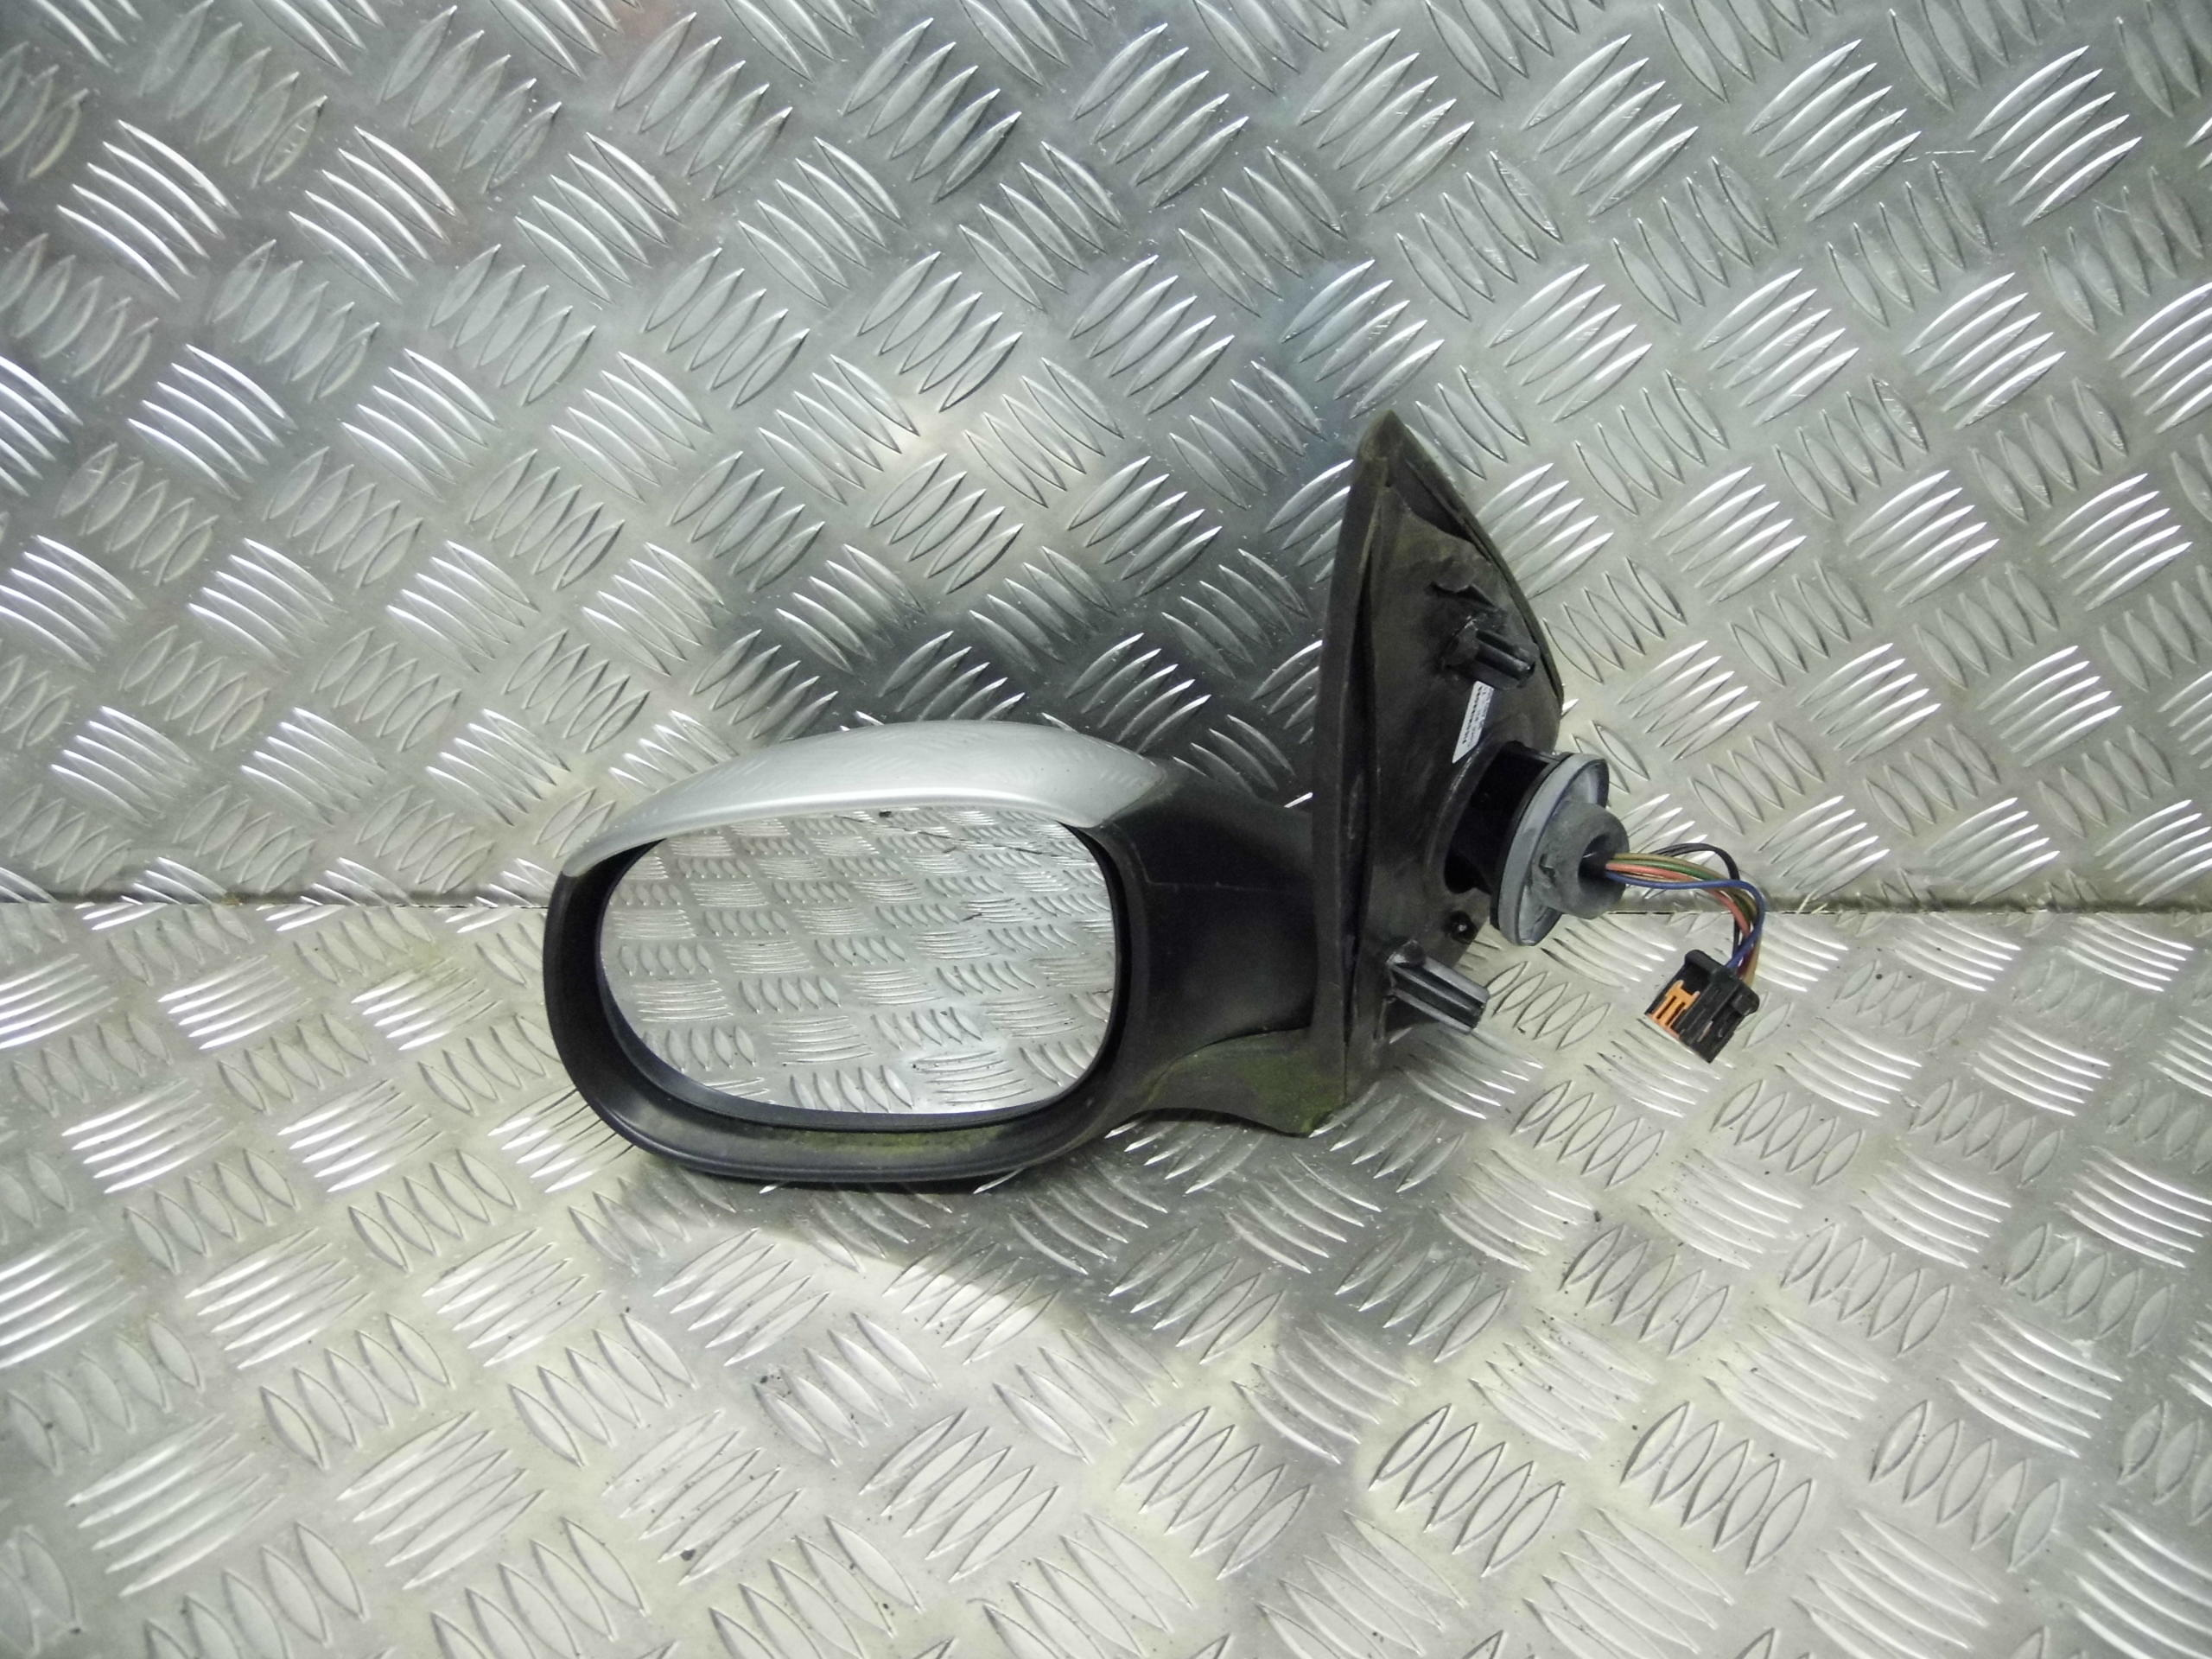 Used 2004 Peugeot 206 Hatchback Under Bonnet Fuse Box Passengers Side Silver Electric Wing Mirror Front View